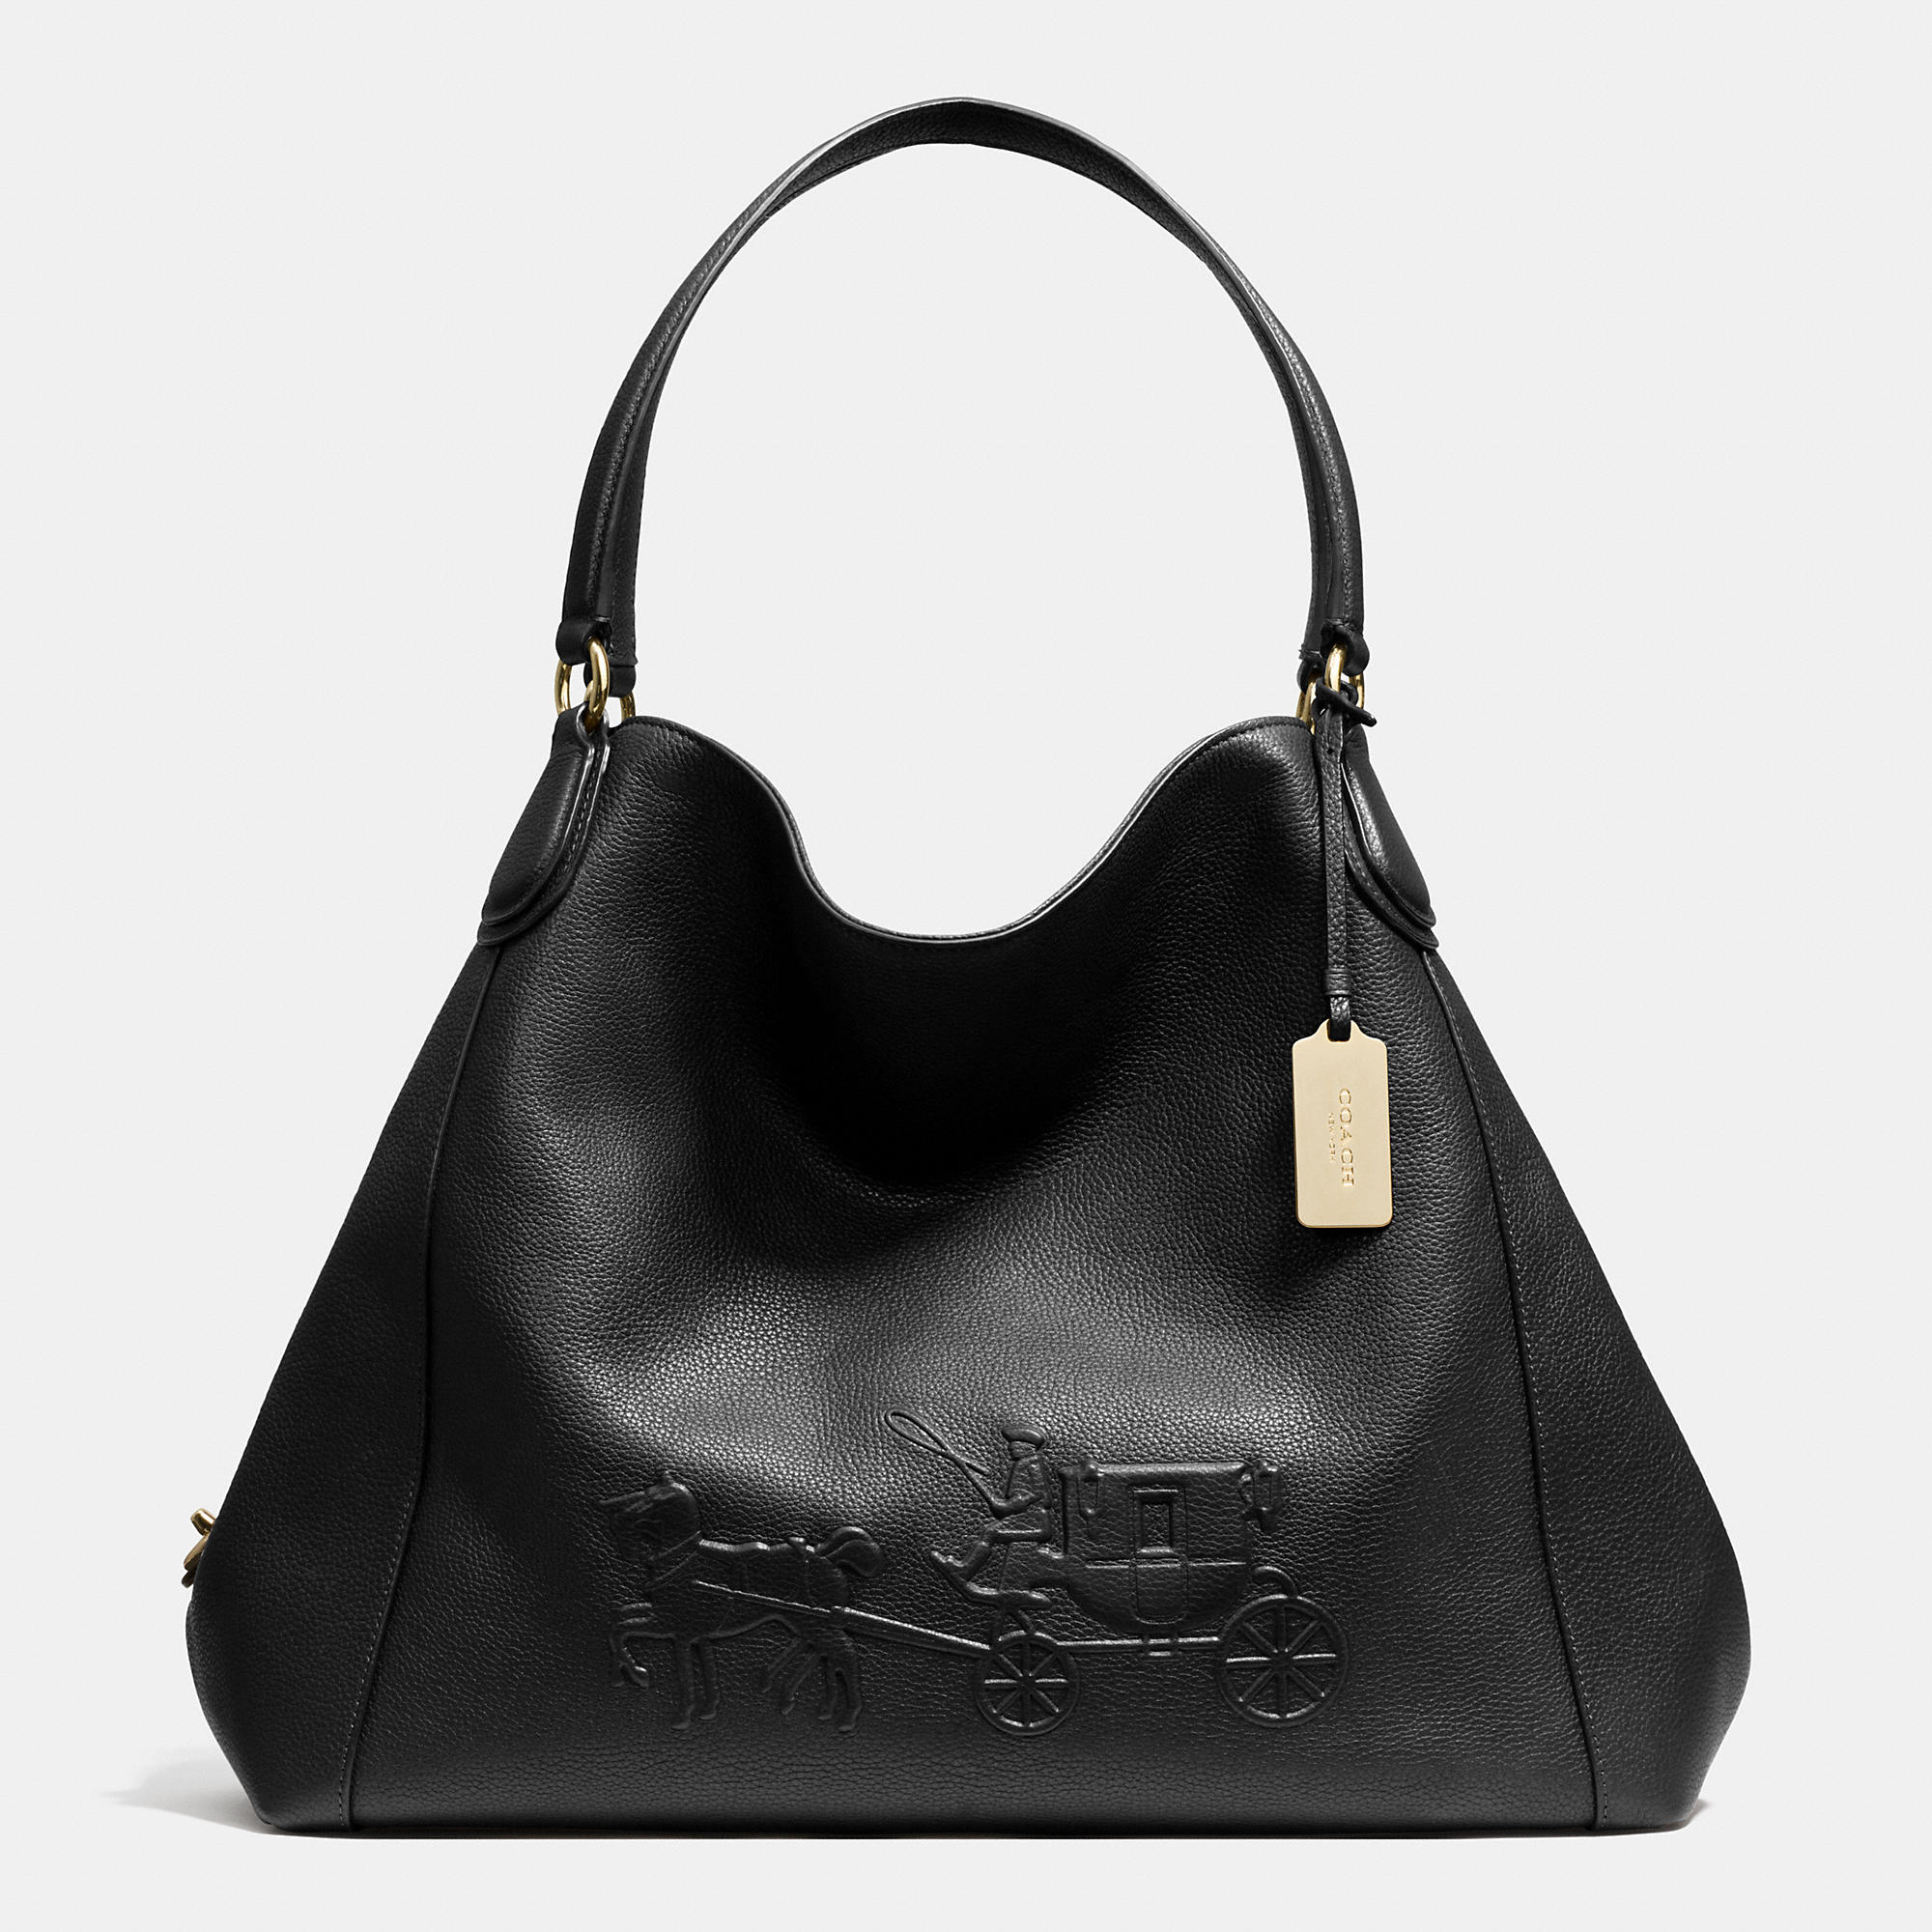 65a83356d Coach Embossed Handbags And Wallets | Stanford Center for ...